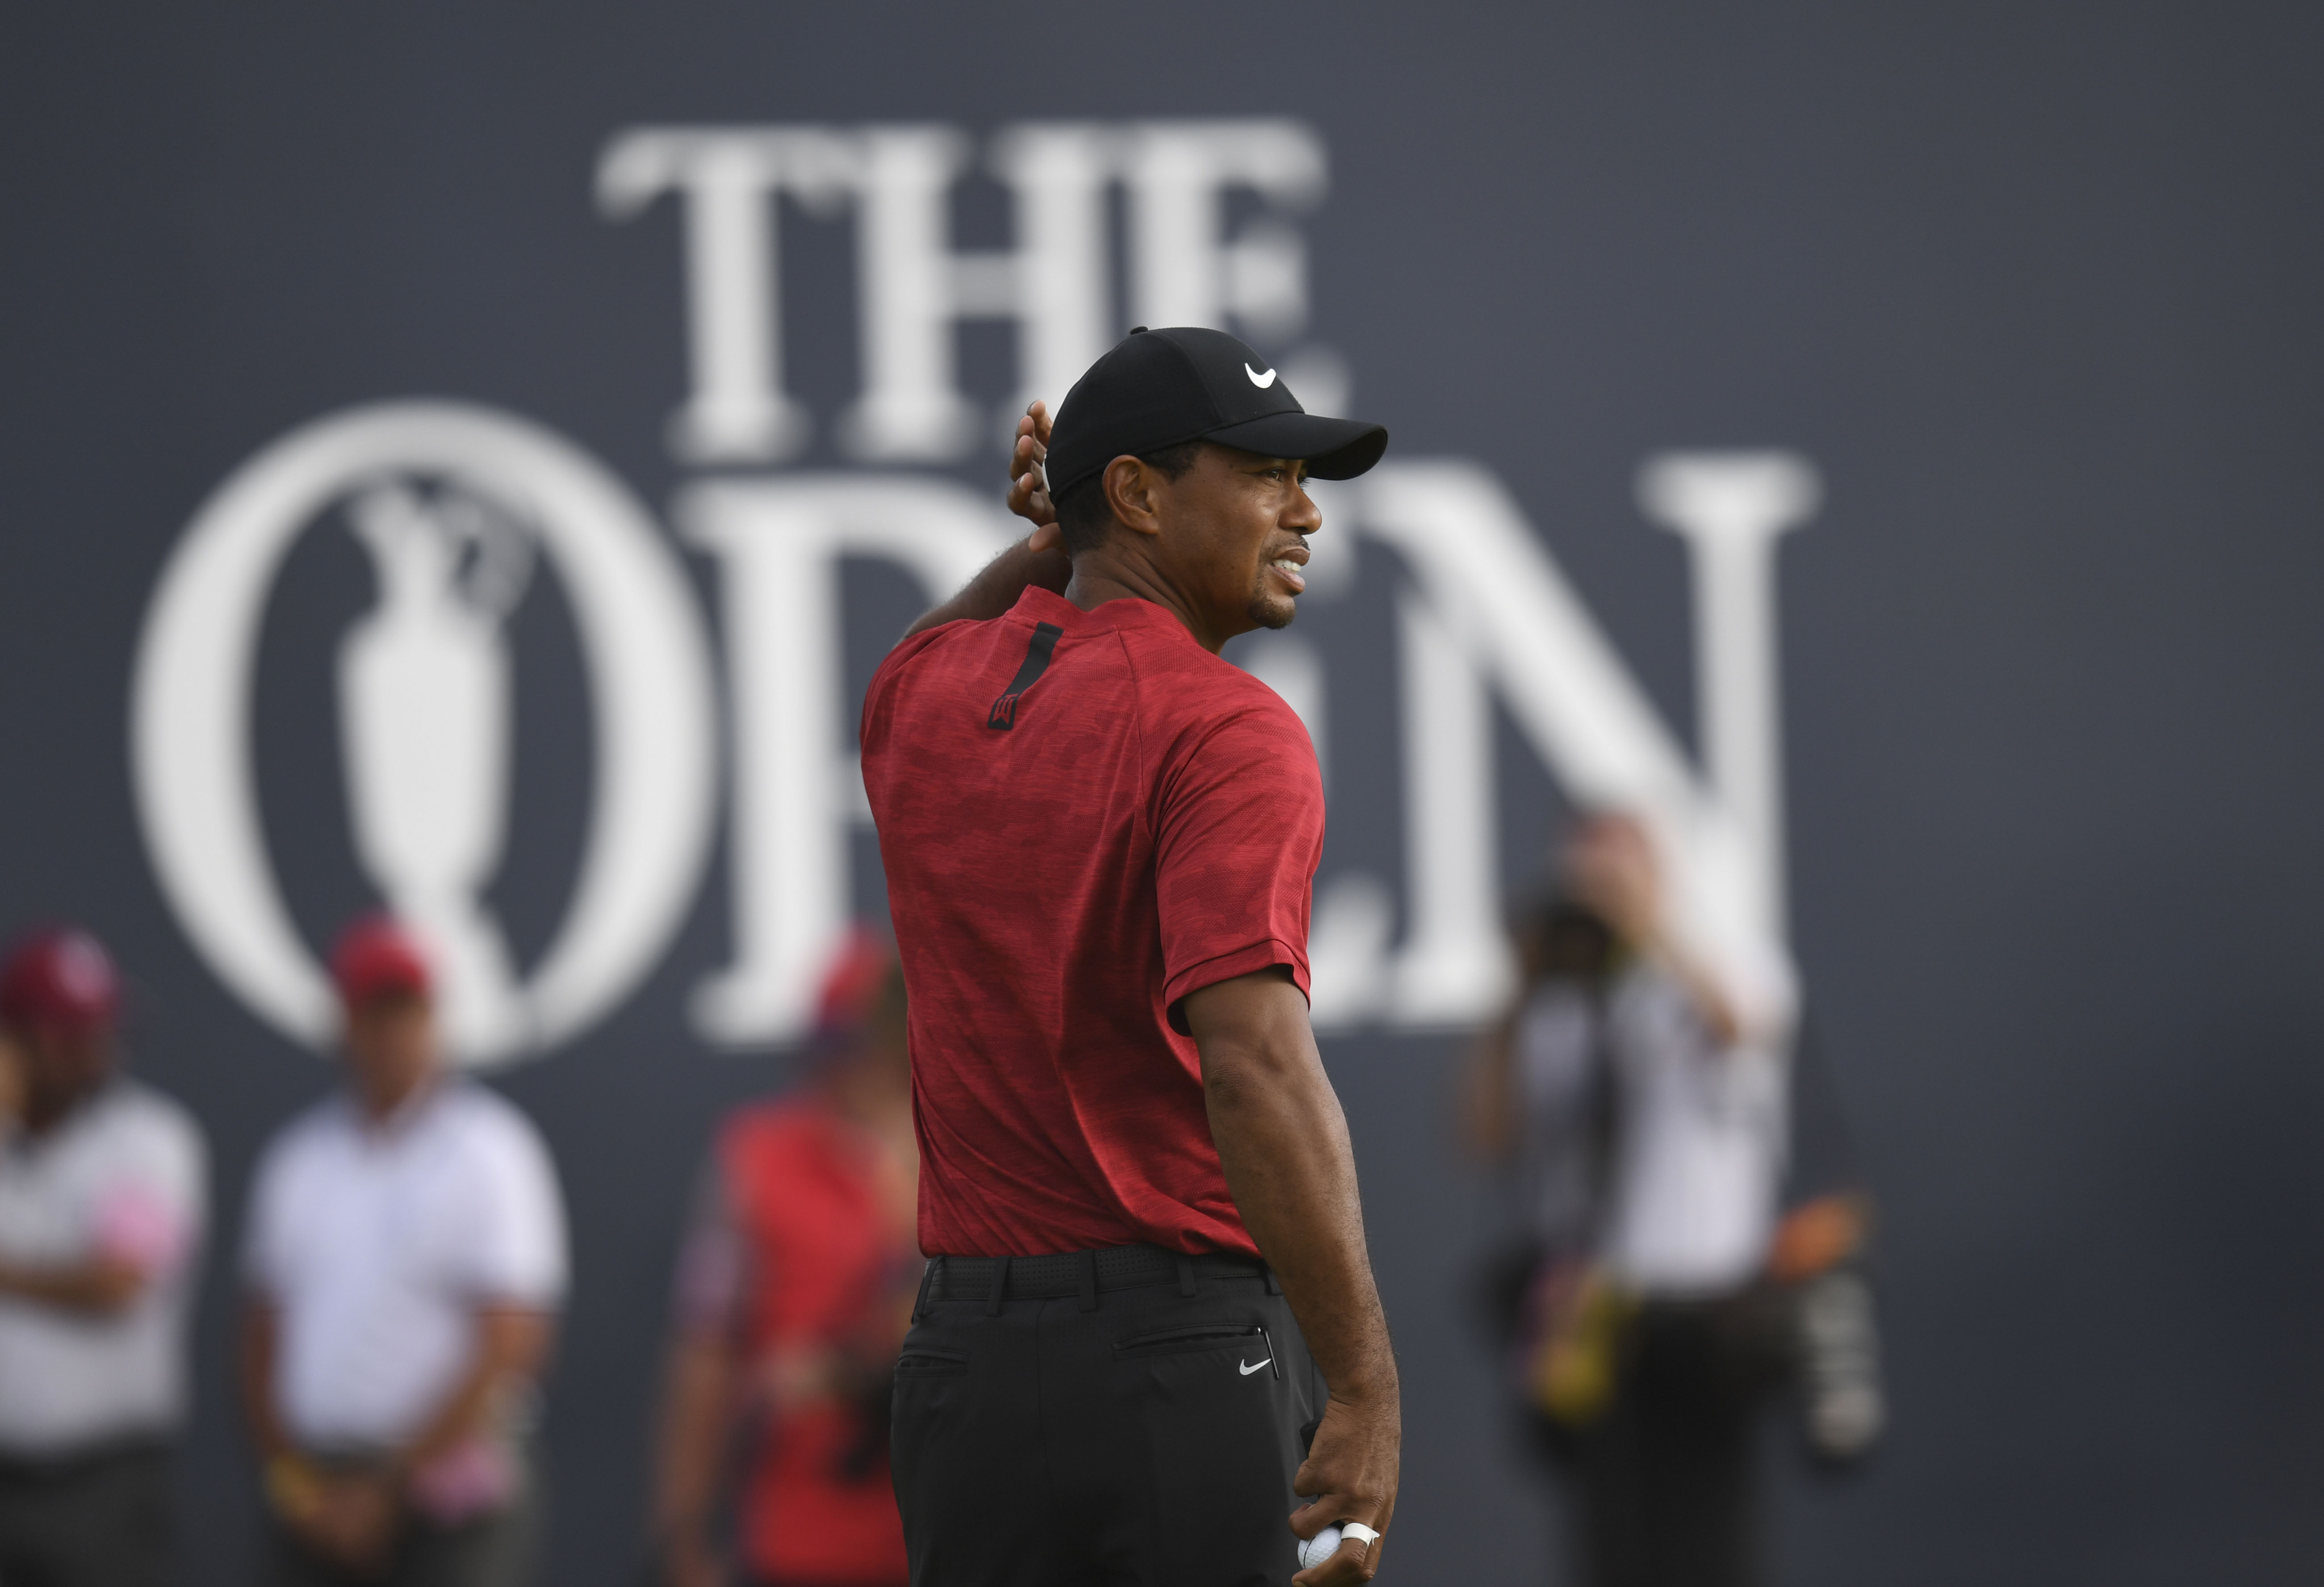 Jul 22, 2018; Carnoustie, Angus, SCT; Tiger Woods looks back on the 18th green after finishing his  final round of The Open Championship golf tournament at Carnoustie Golf Links. Mandatory Credit: Thomas J. Russo-USA TODAY Sports